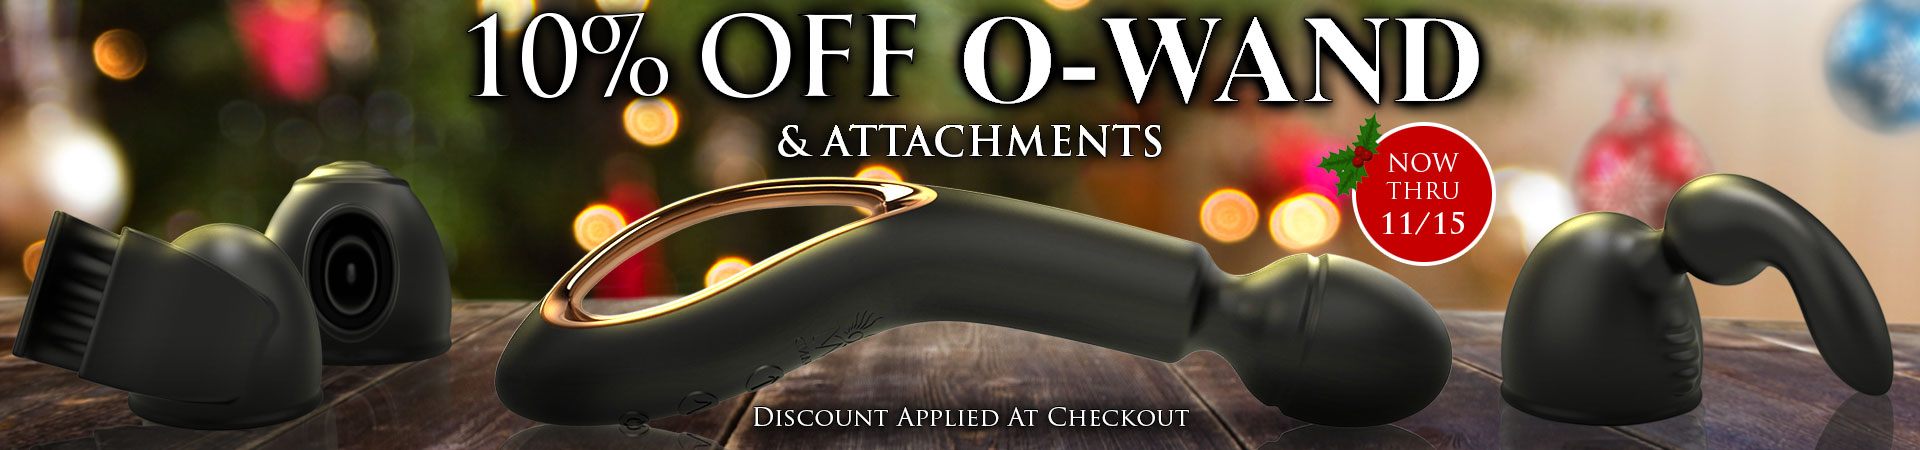 SheVibe Invites You To Give The Gift Of Mind Blowing Pleasure! Save 10% On The O-Wand & O-Wand Accessories Through November 15th!